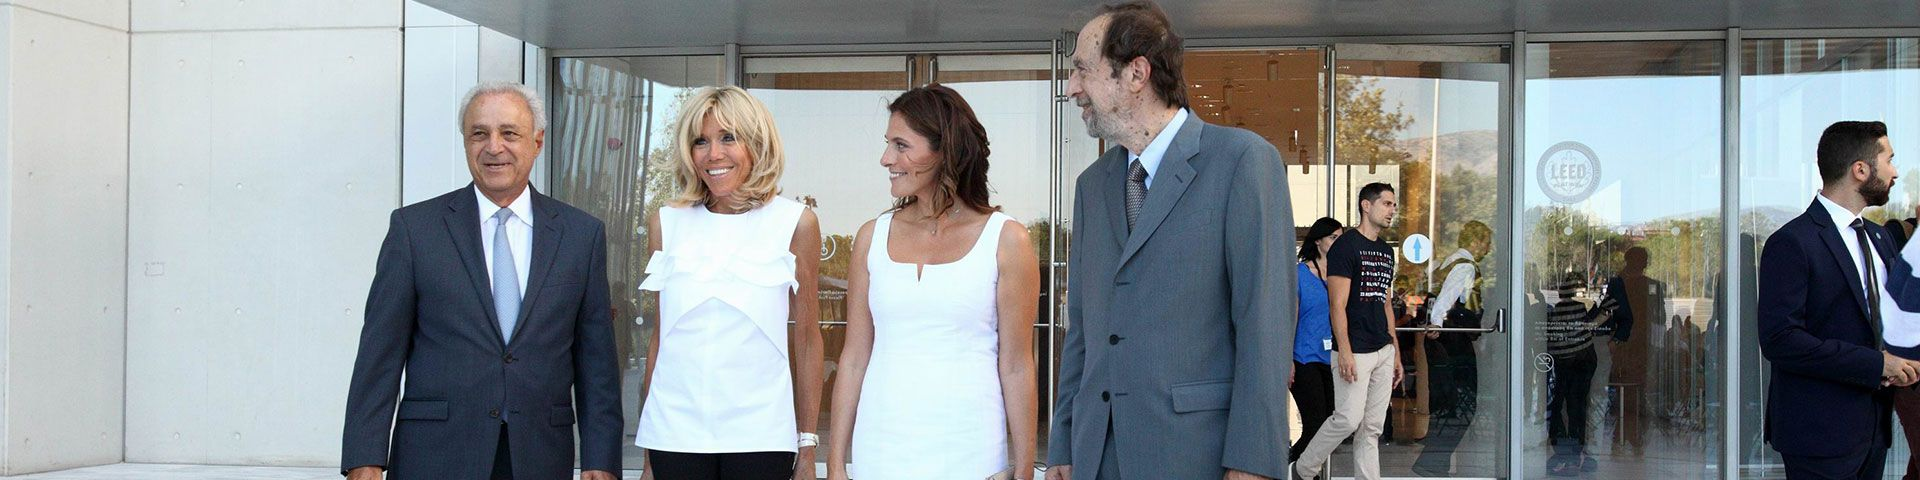 Highlights from the visit of Ms Betty Baziana and Ms Brigitte Macron at SNFCC - Εικόνα